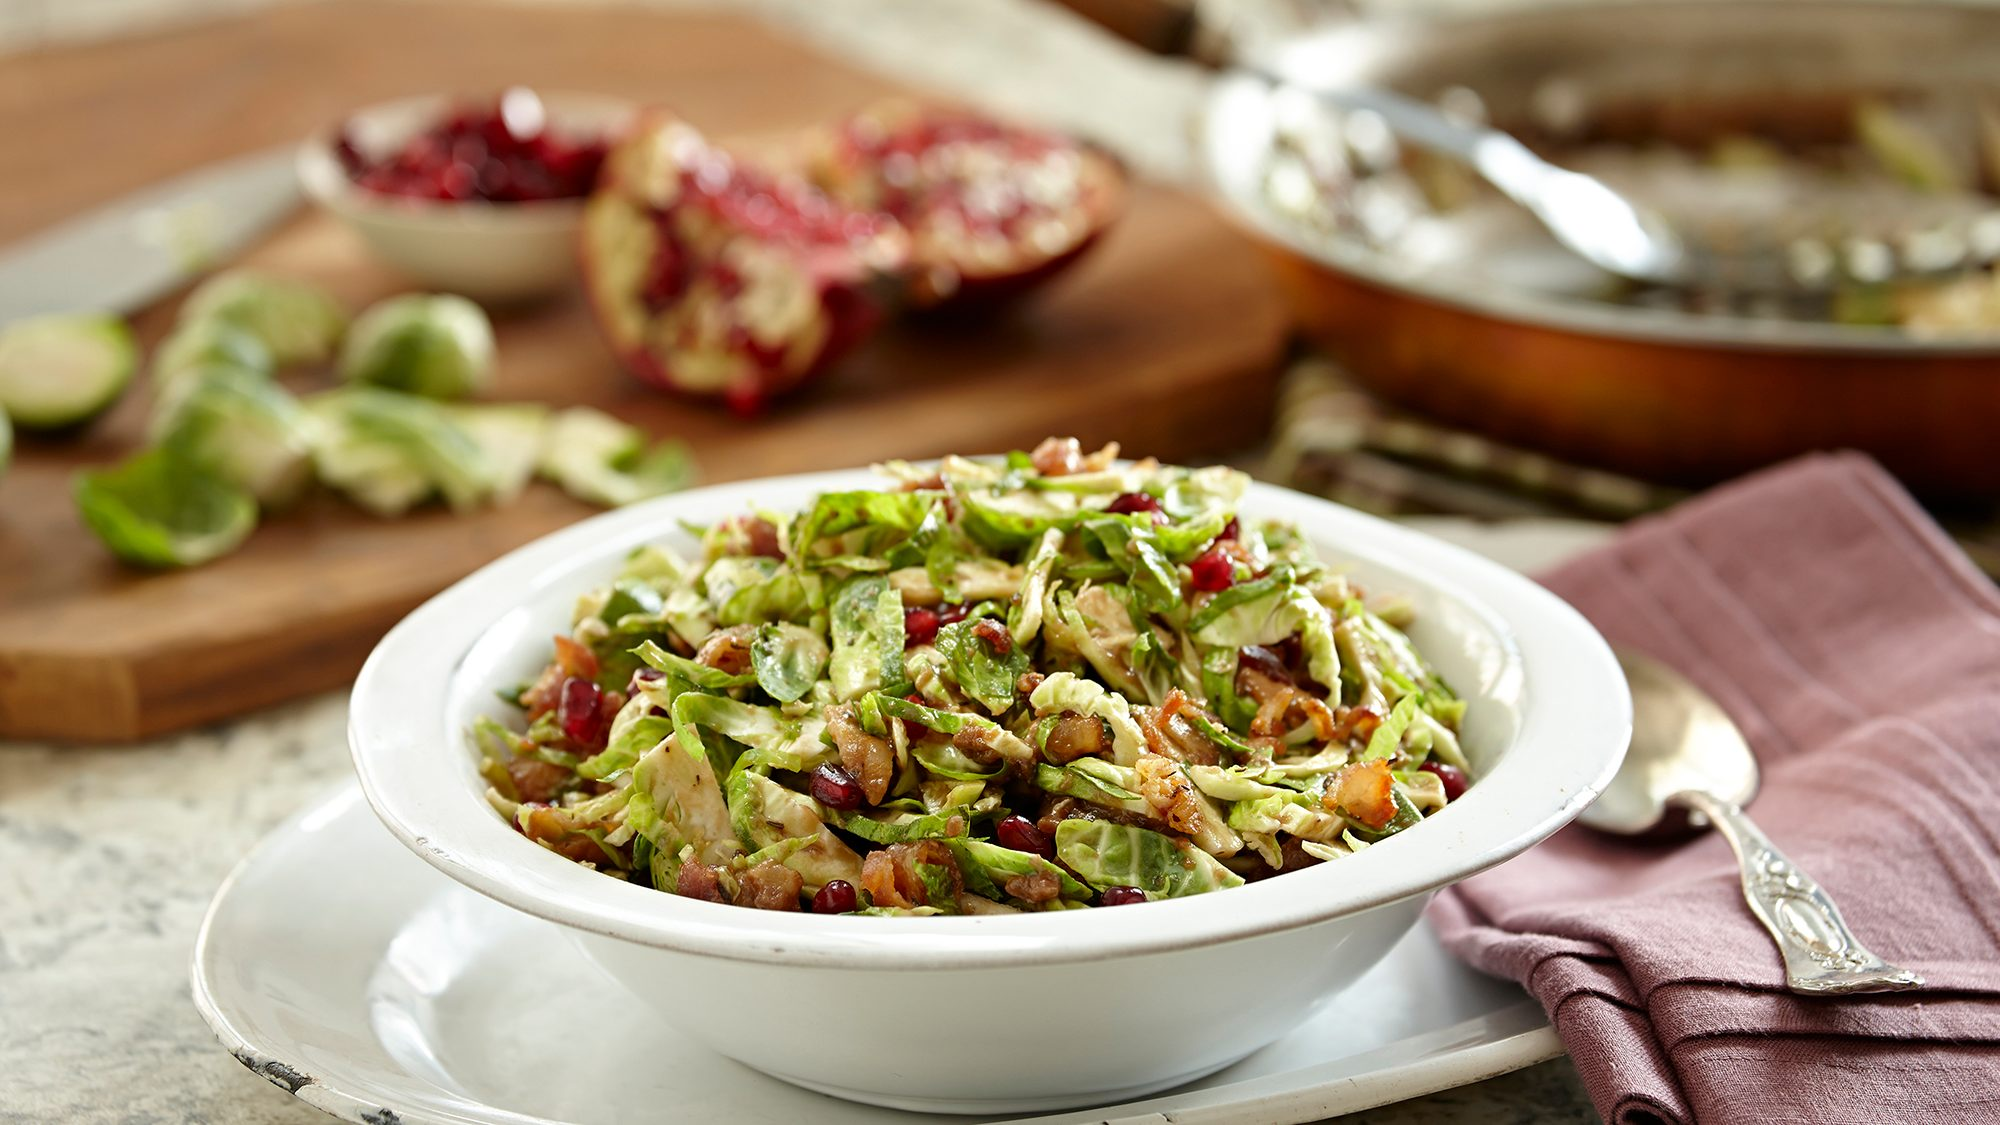 McCormick Gourmet Brussels Sprouts with Warm Bacon Pomegranate Dressing